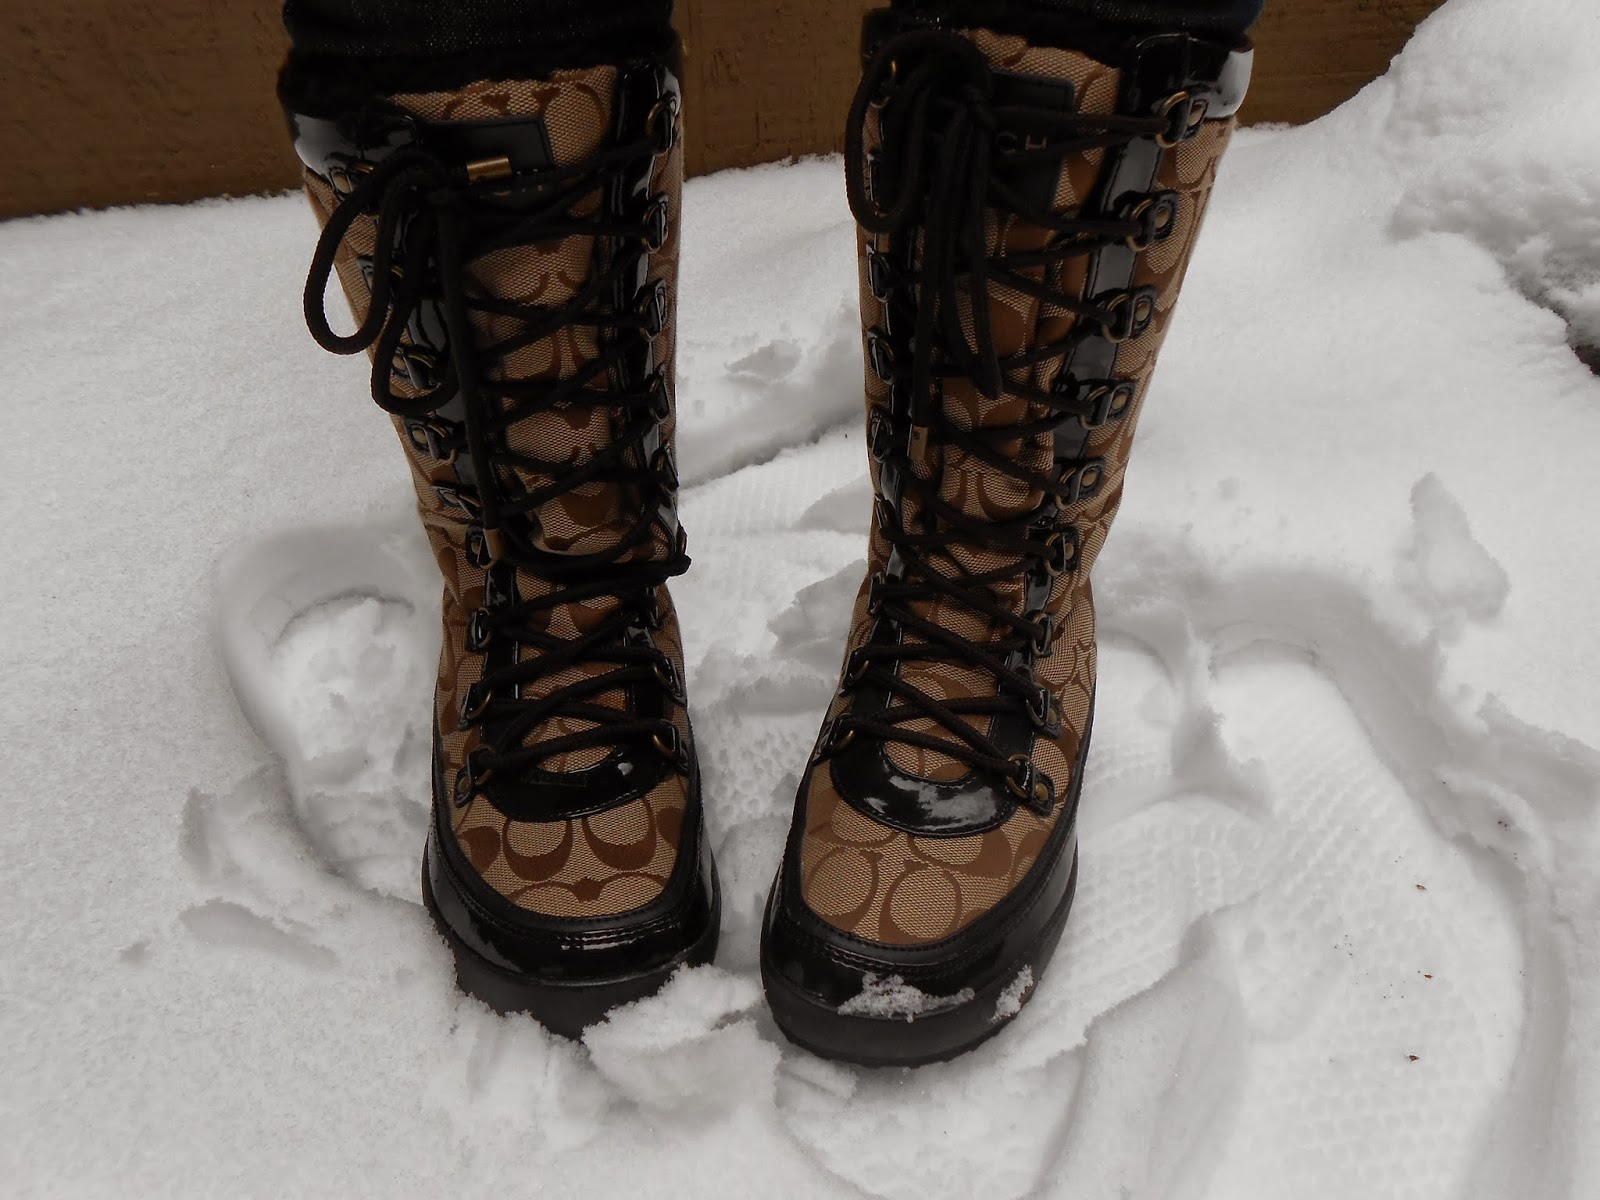 snow boots and winter neutrals compass chic